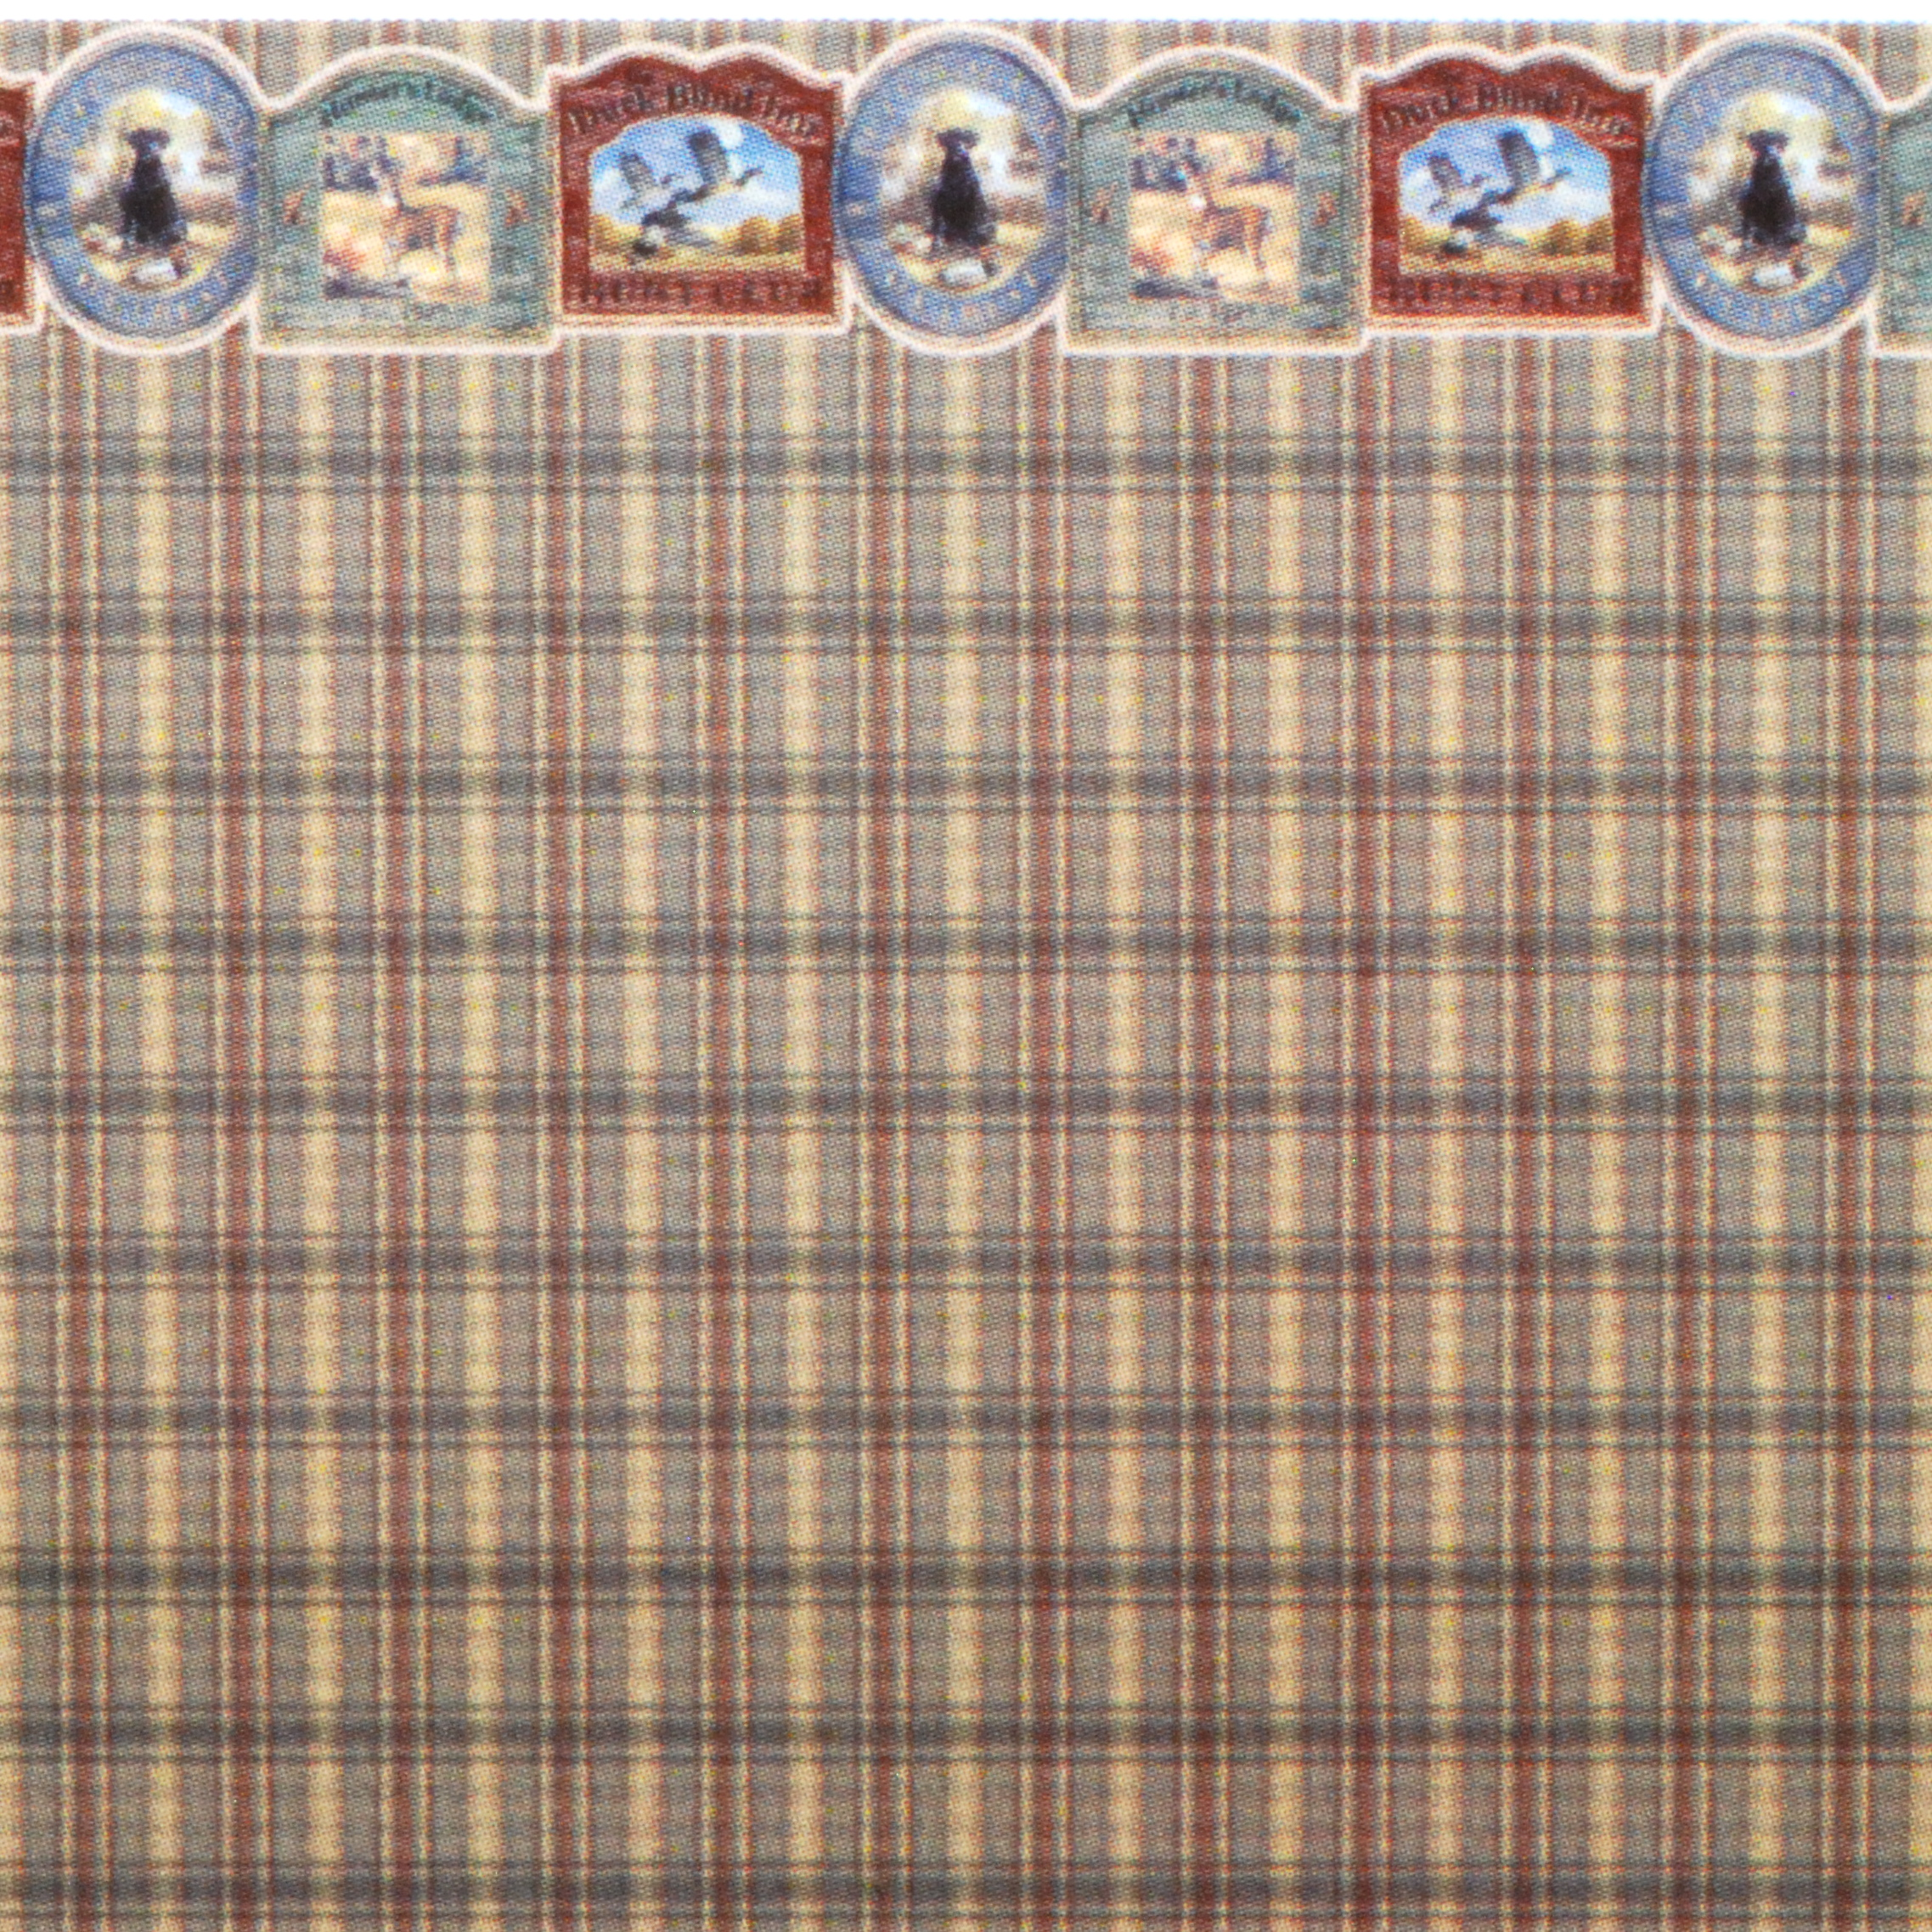 Wallpaper Stitch 3d 1 48 Wallpaper Quot Puppies And Plaid Quot Stewart Dollhouse